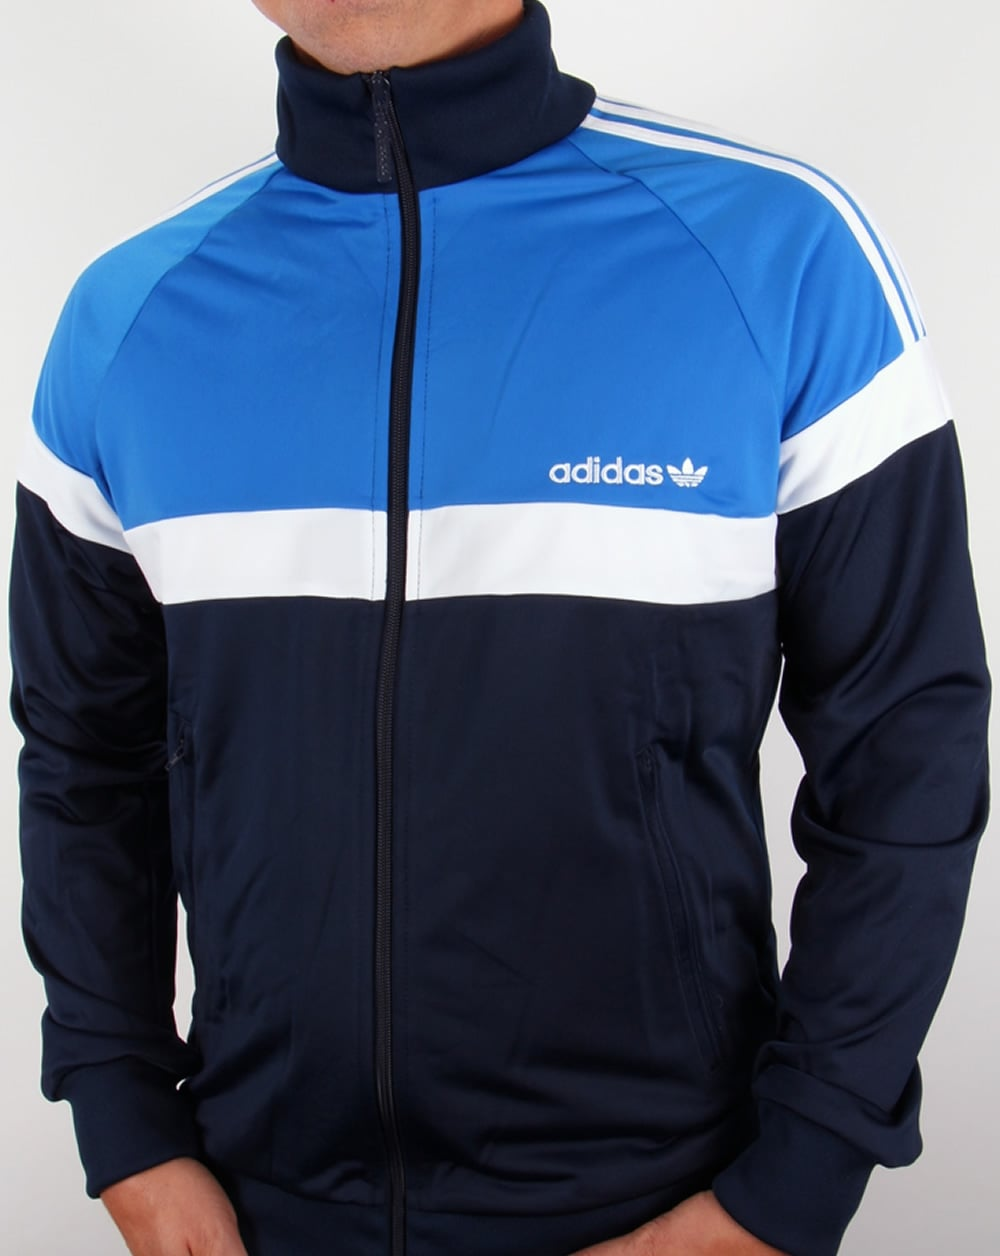 adidas originals itasca track top navy royal blue. Black Bedroom Furniture Sets. Home Design Ideas